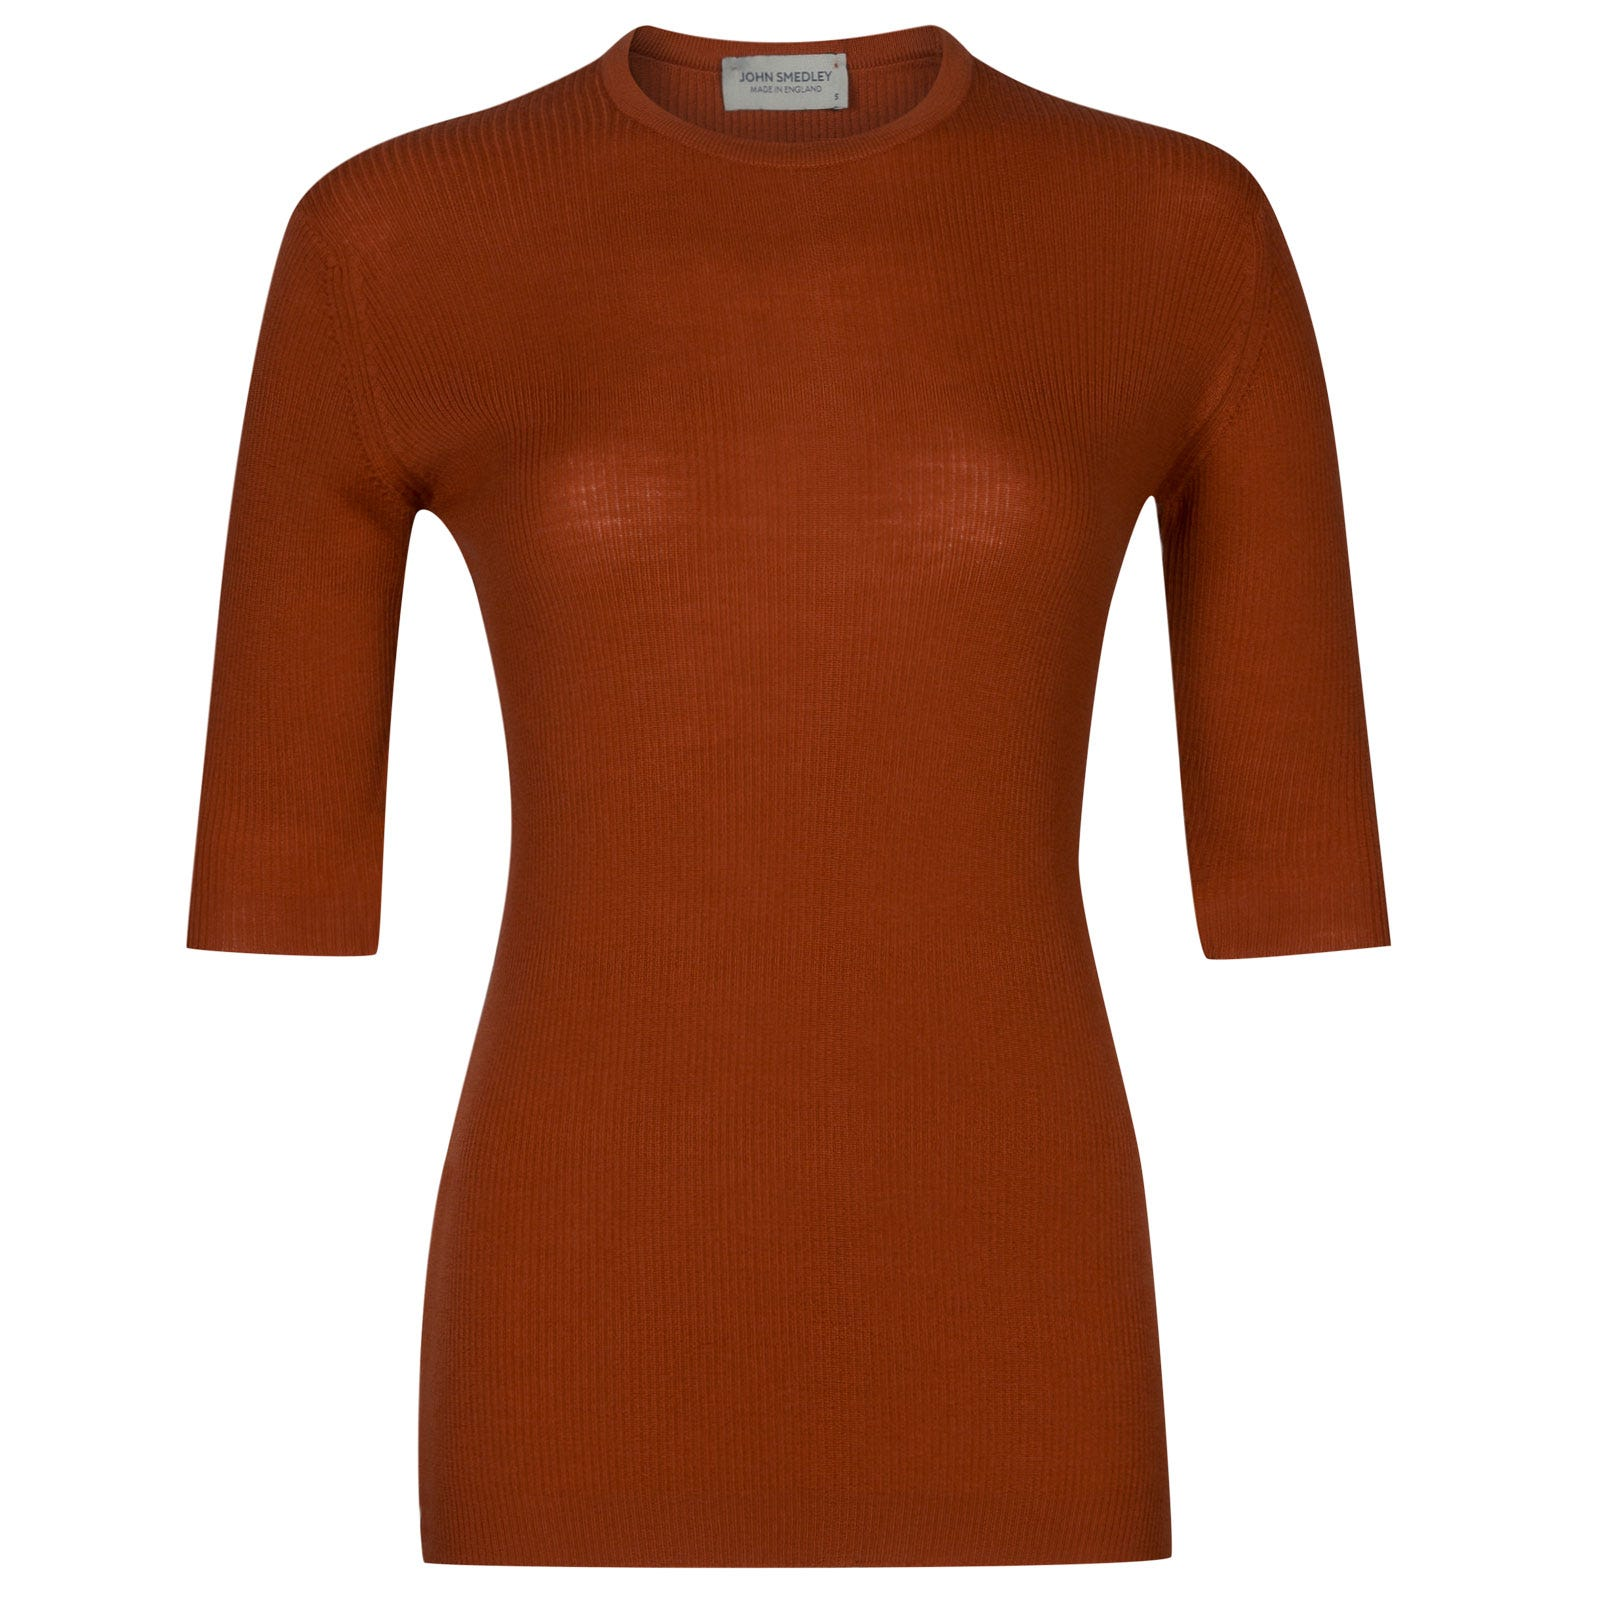 John Smedley wilis Merino Wool Sweater in Flare Orange-L